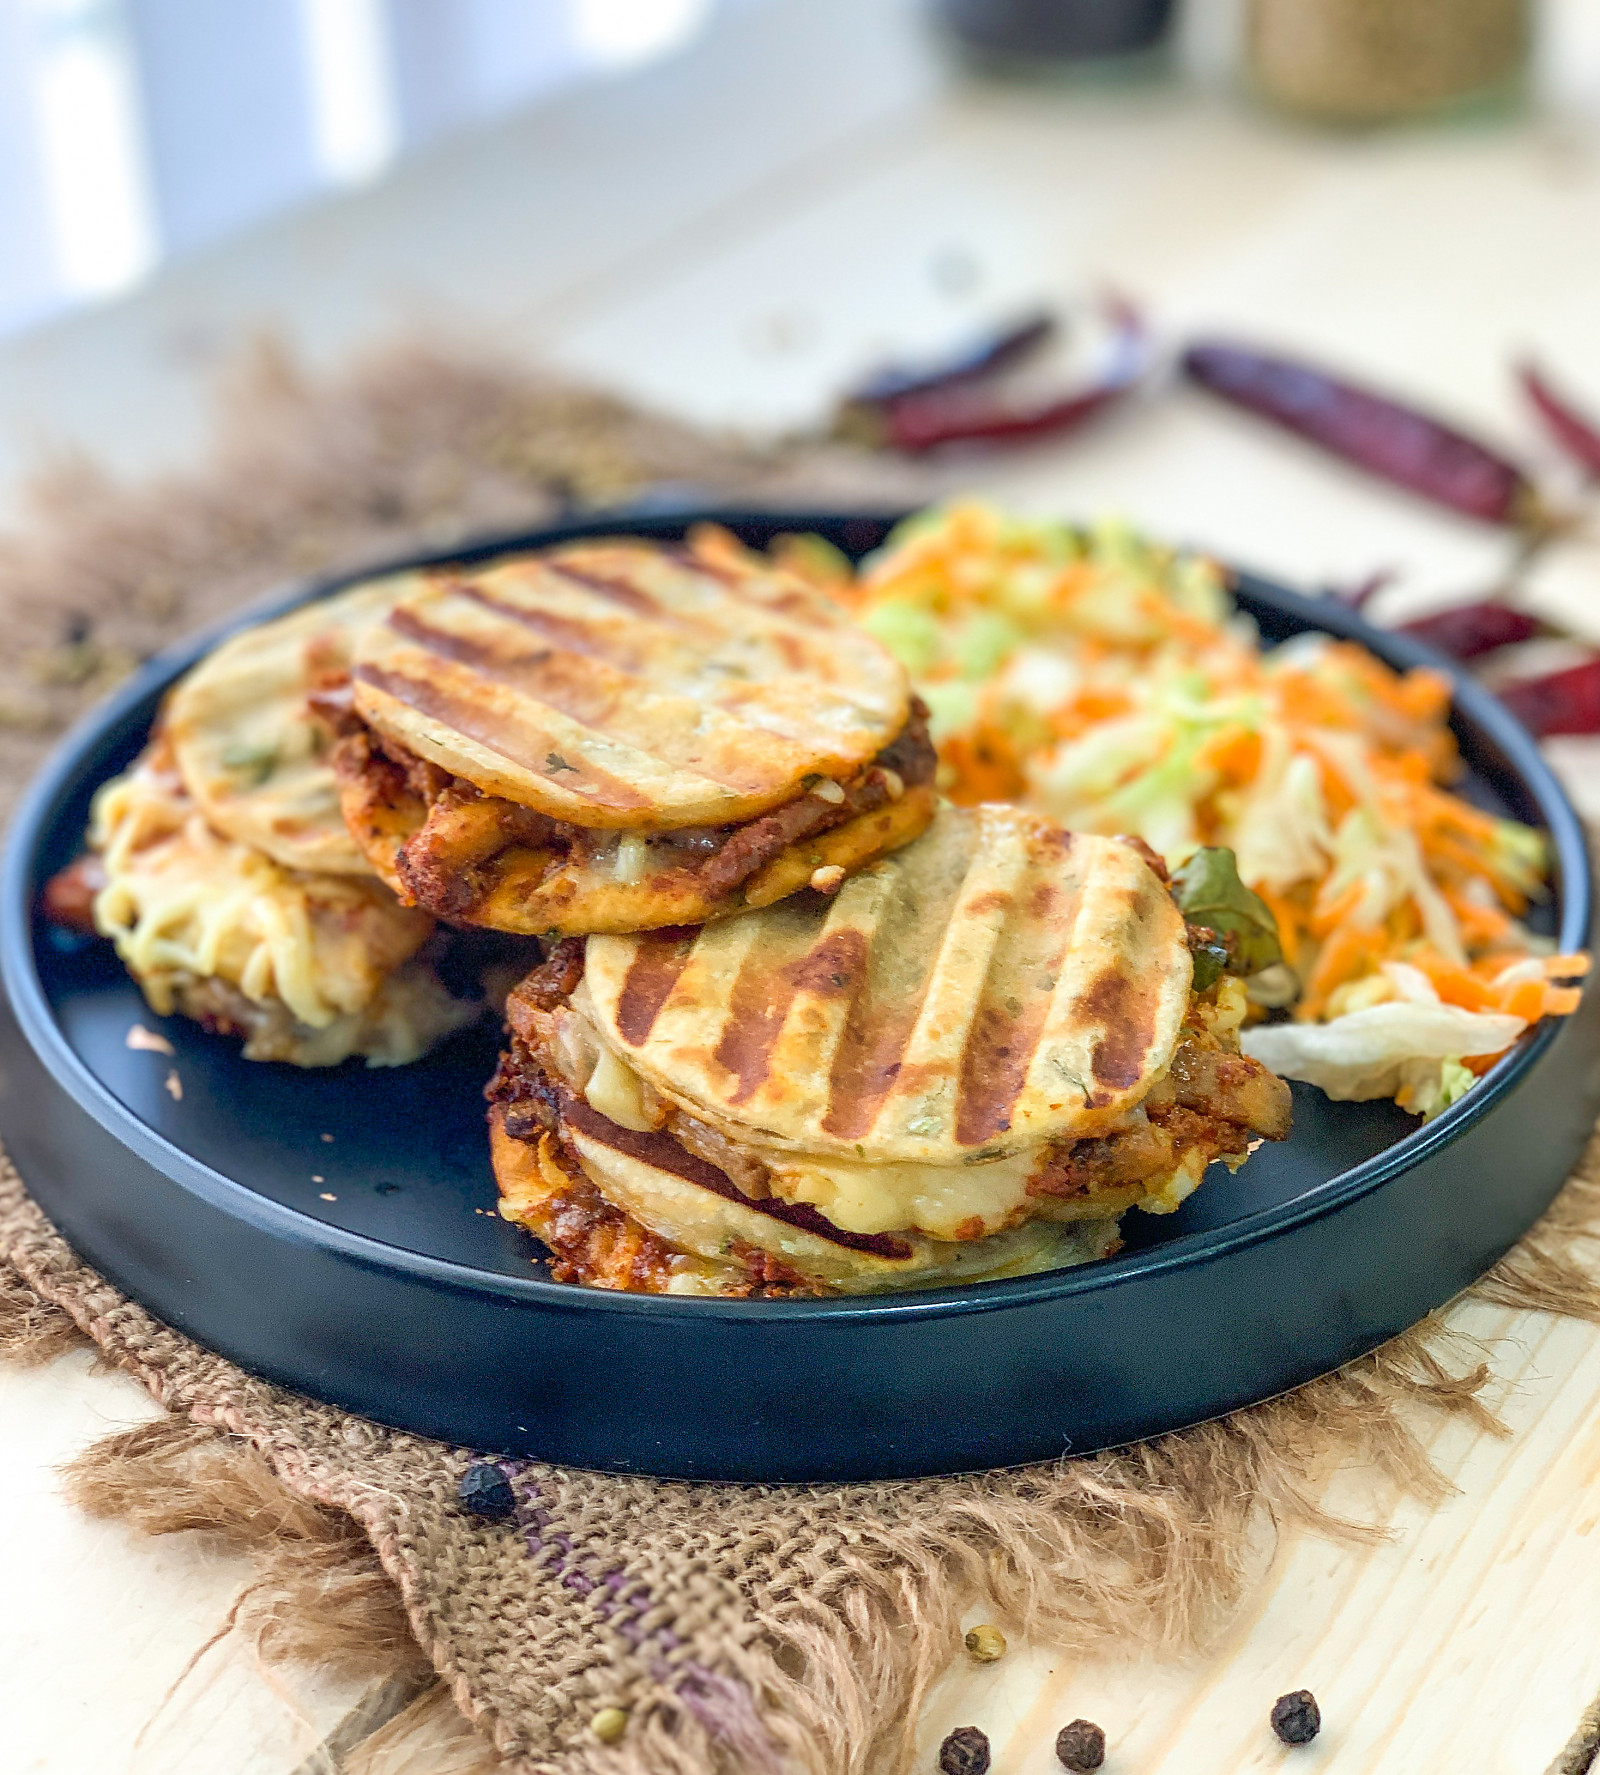 Cheesy Kulcha Sandwich Recipe With Ghee Roast Mushrooms